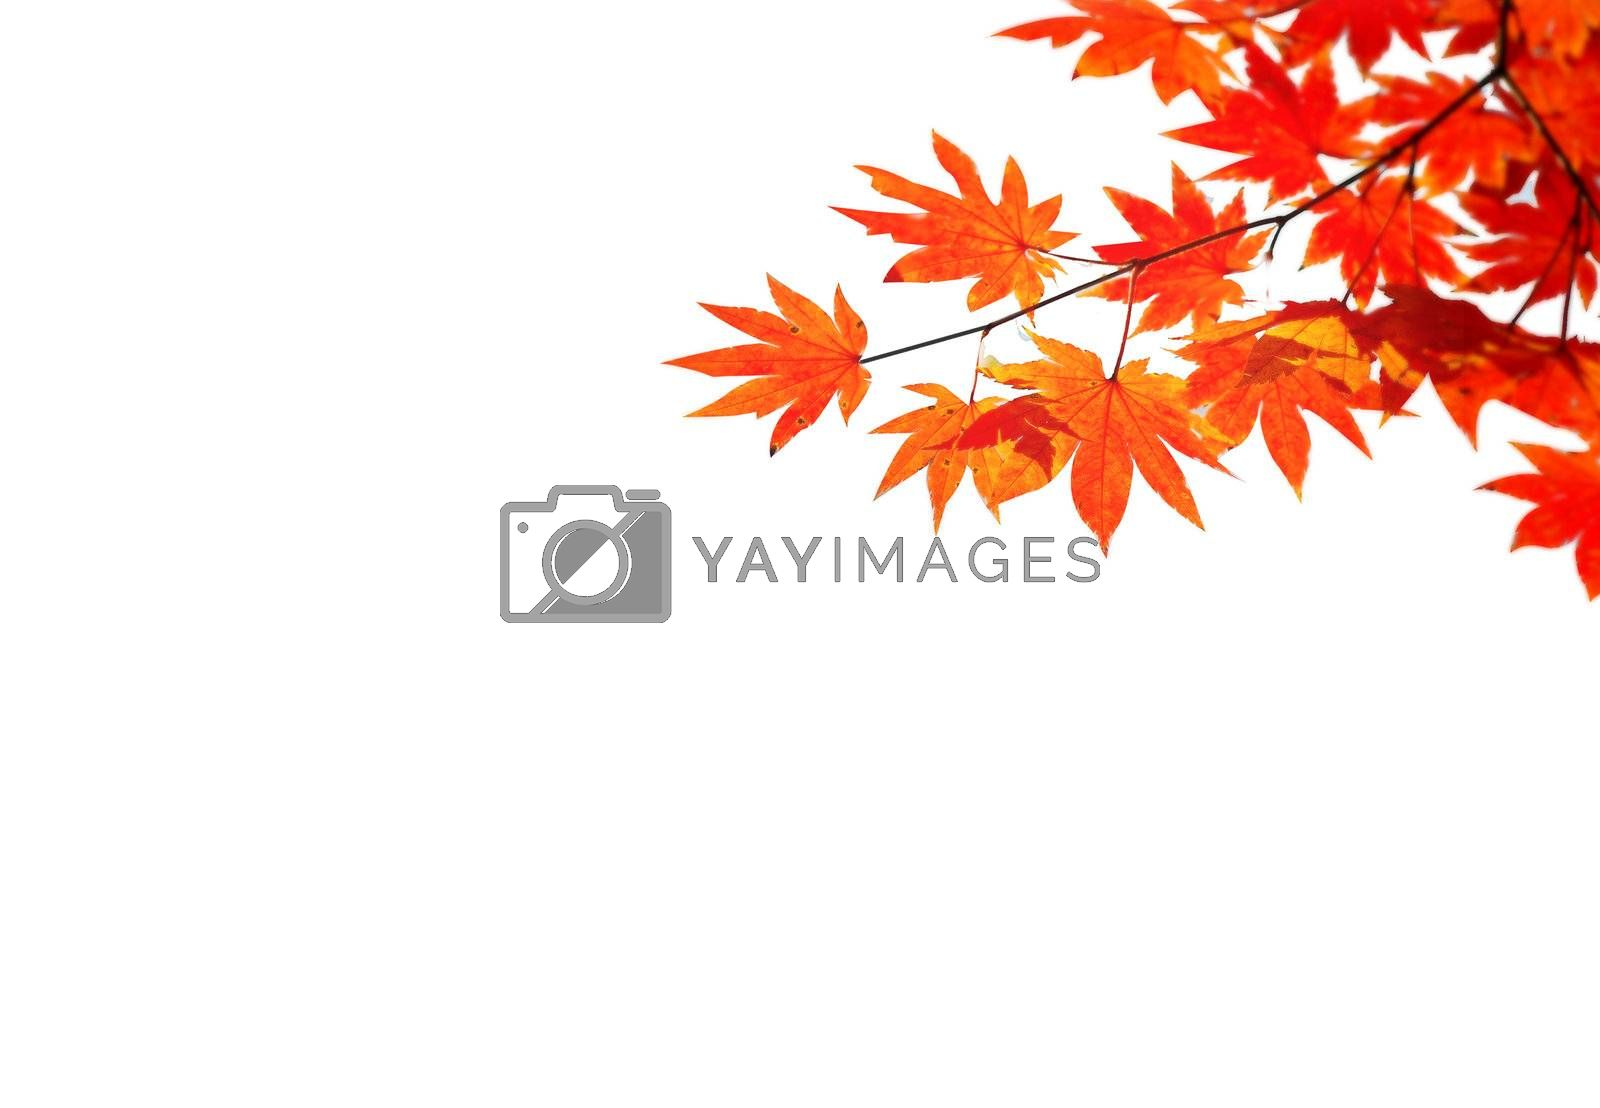 Autumn situation with red and yellow leaves for your autumn design